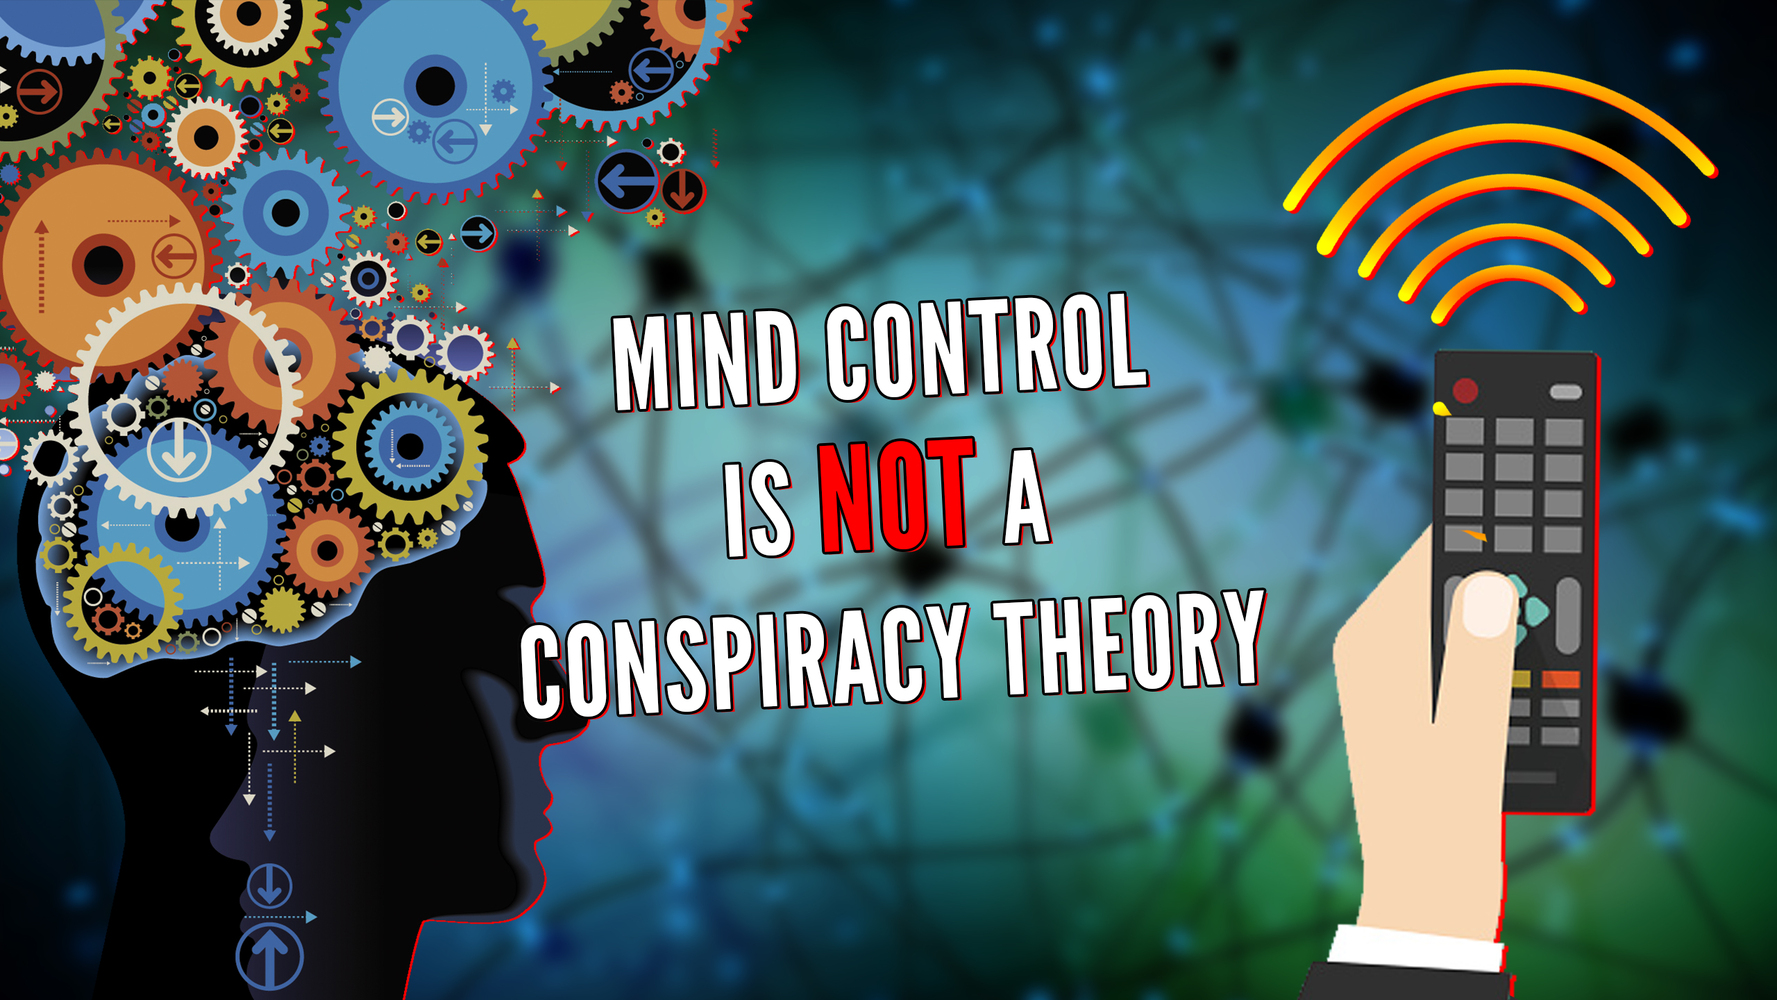 mind-control-is-not-a-conspiracy-theory-|-minds